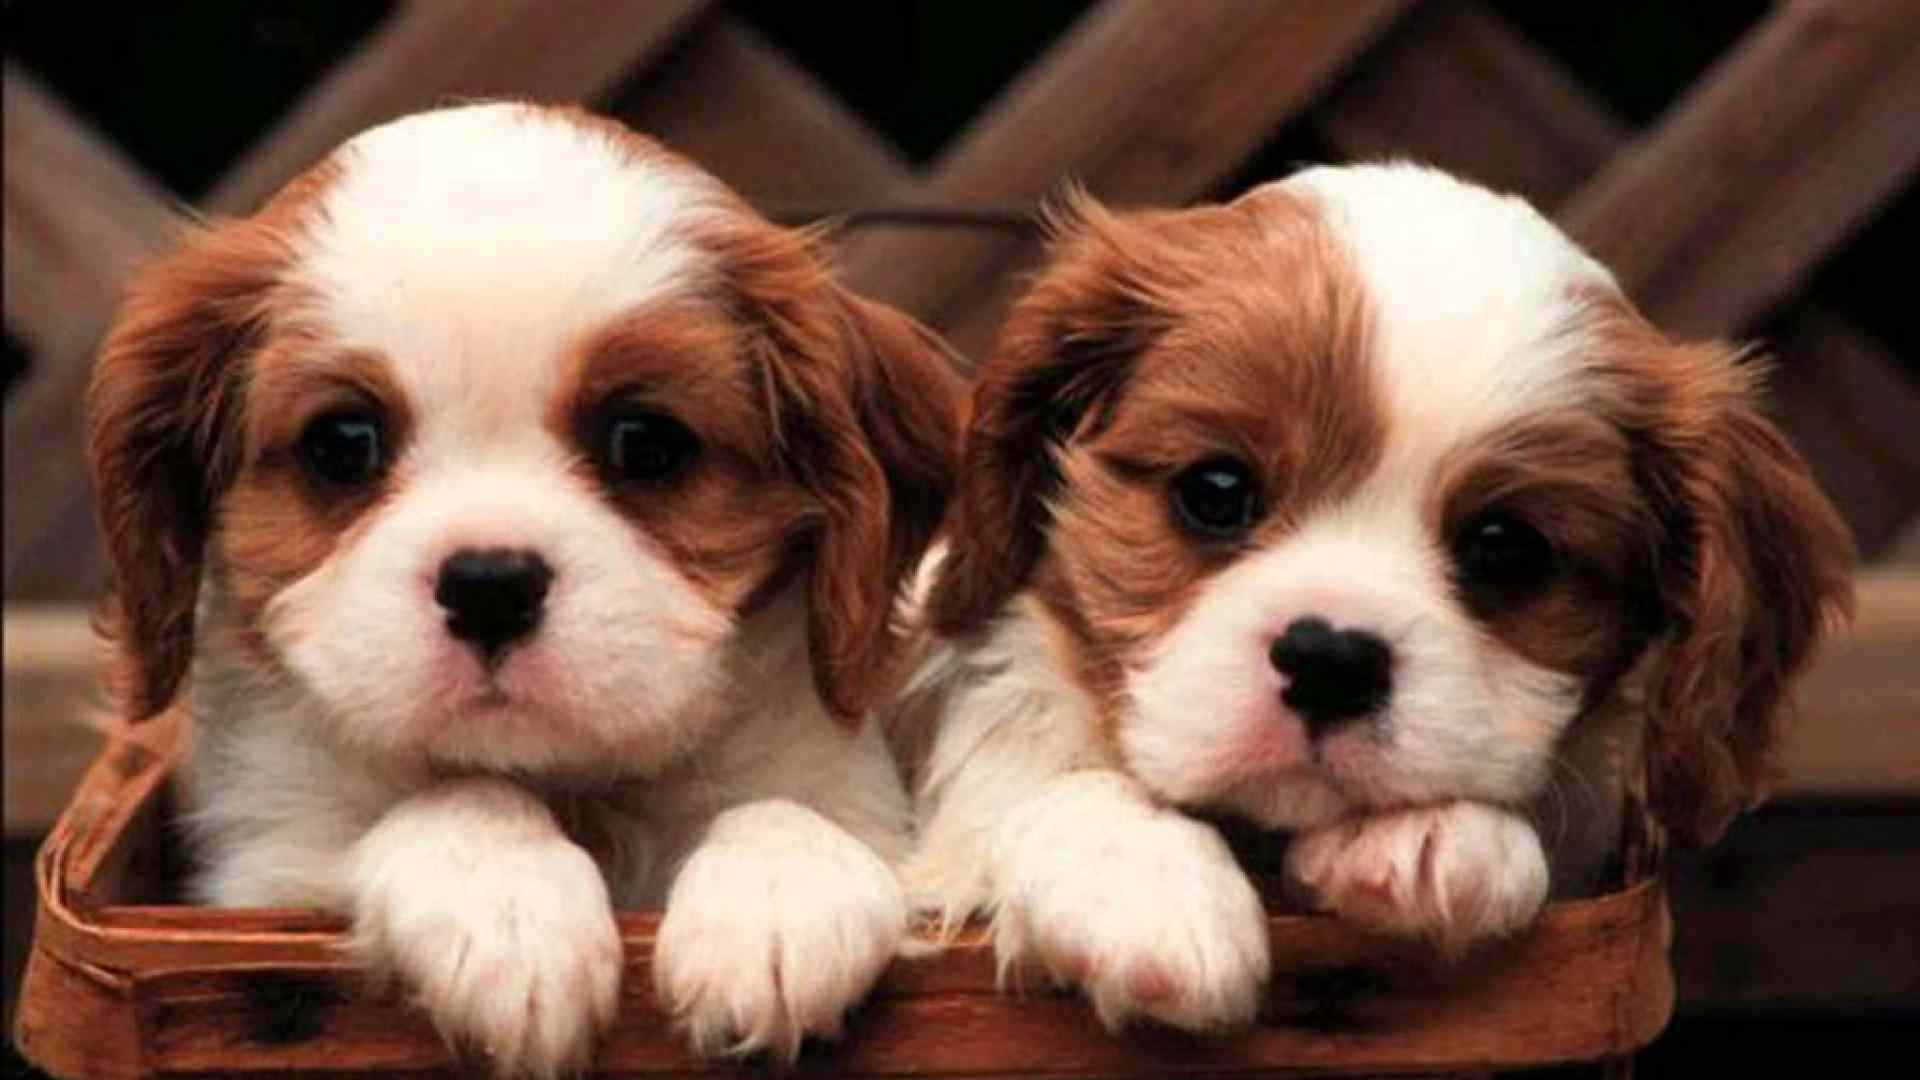 Cute Puppy Wallpapers Those Are Perfect To Make Your Mood Happy